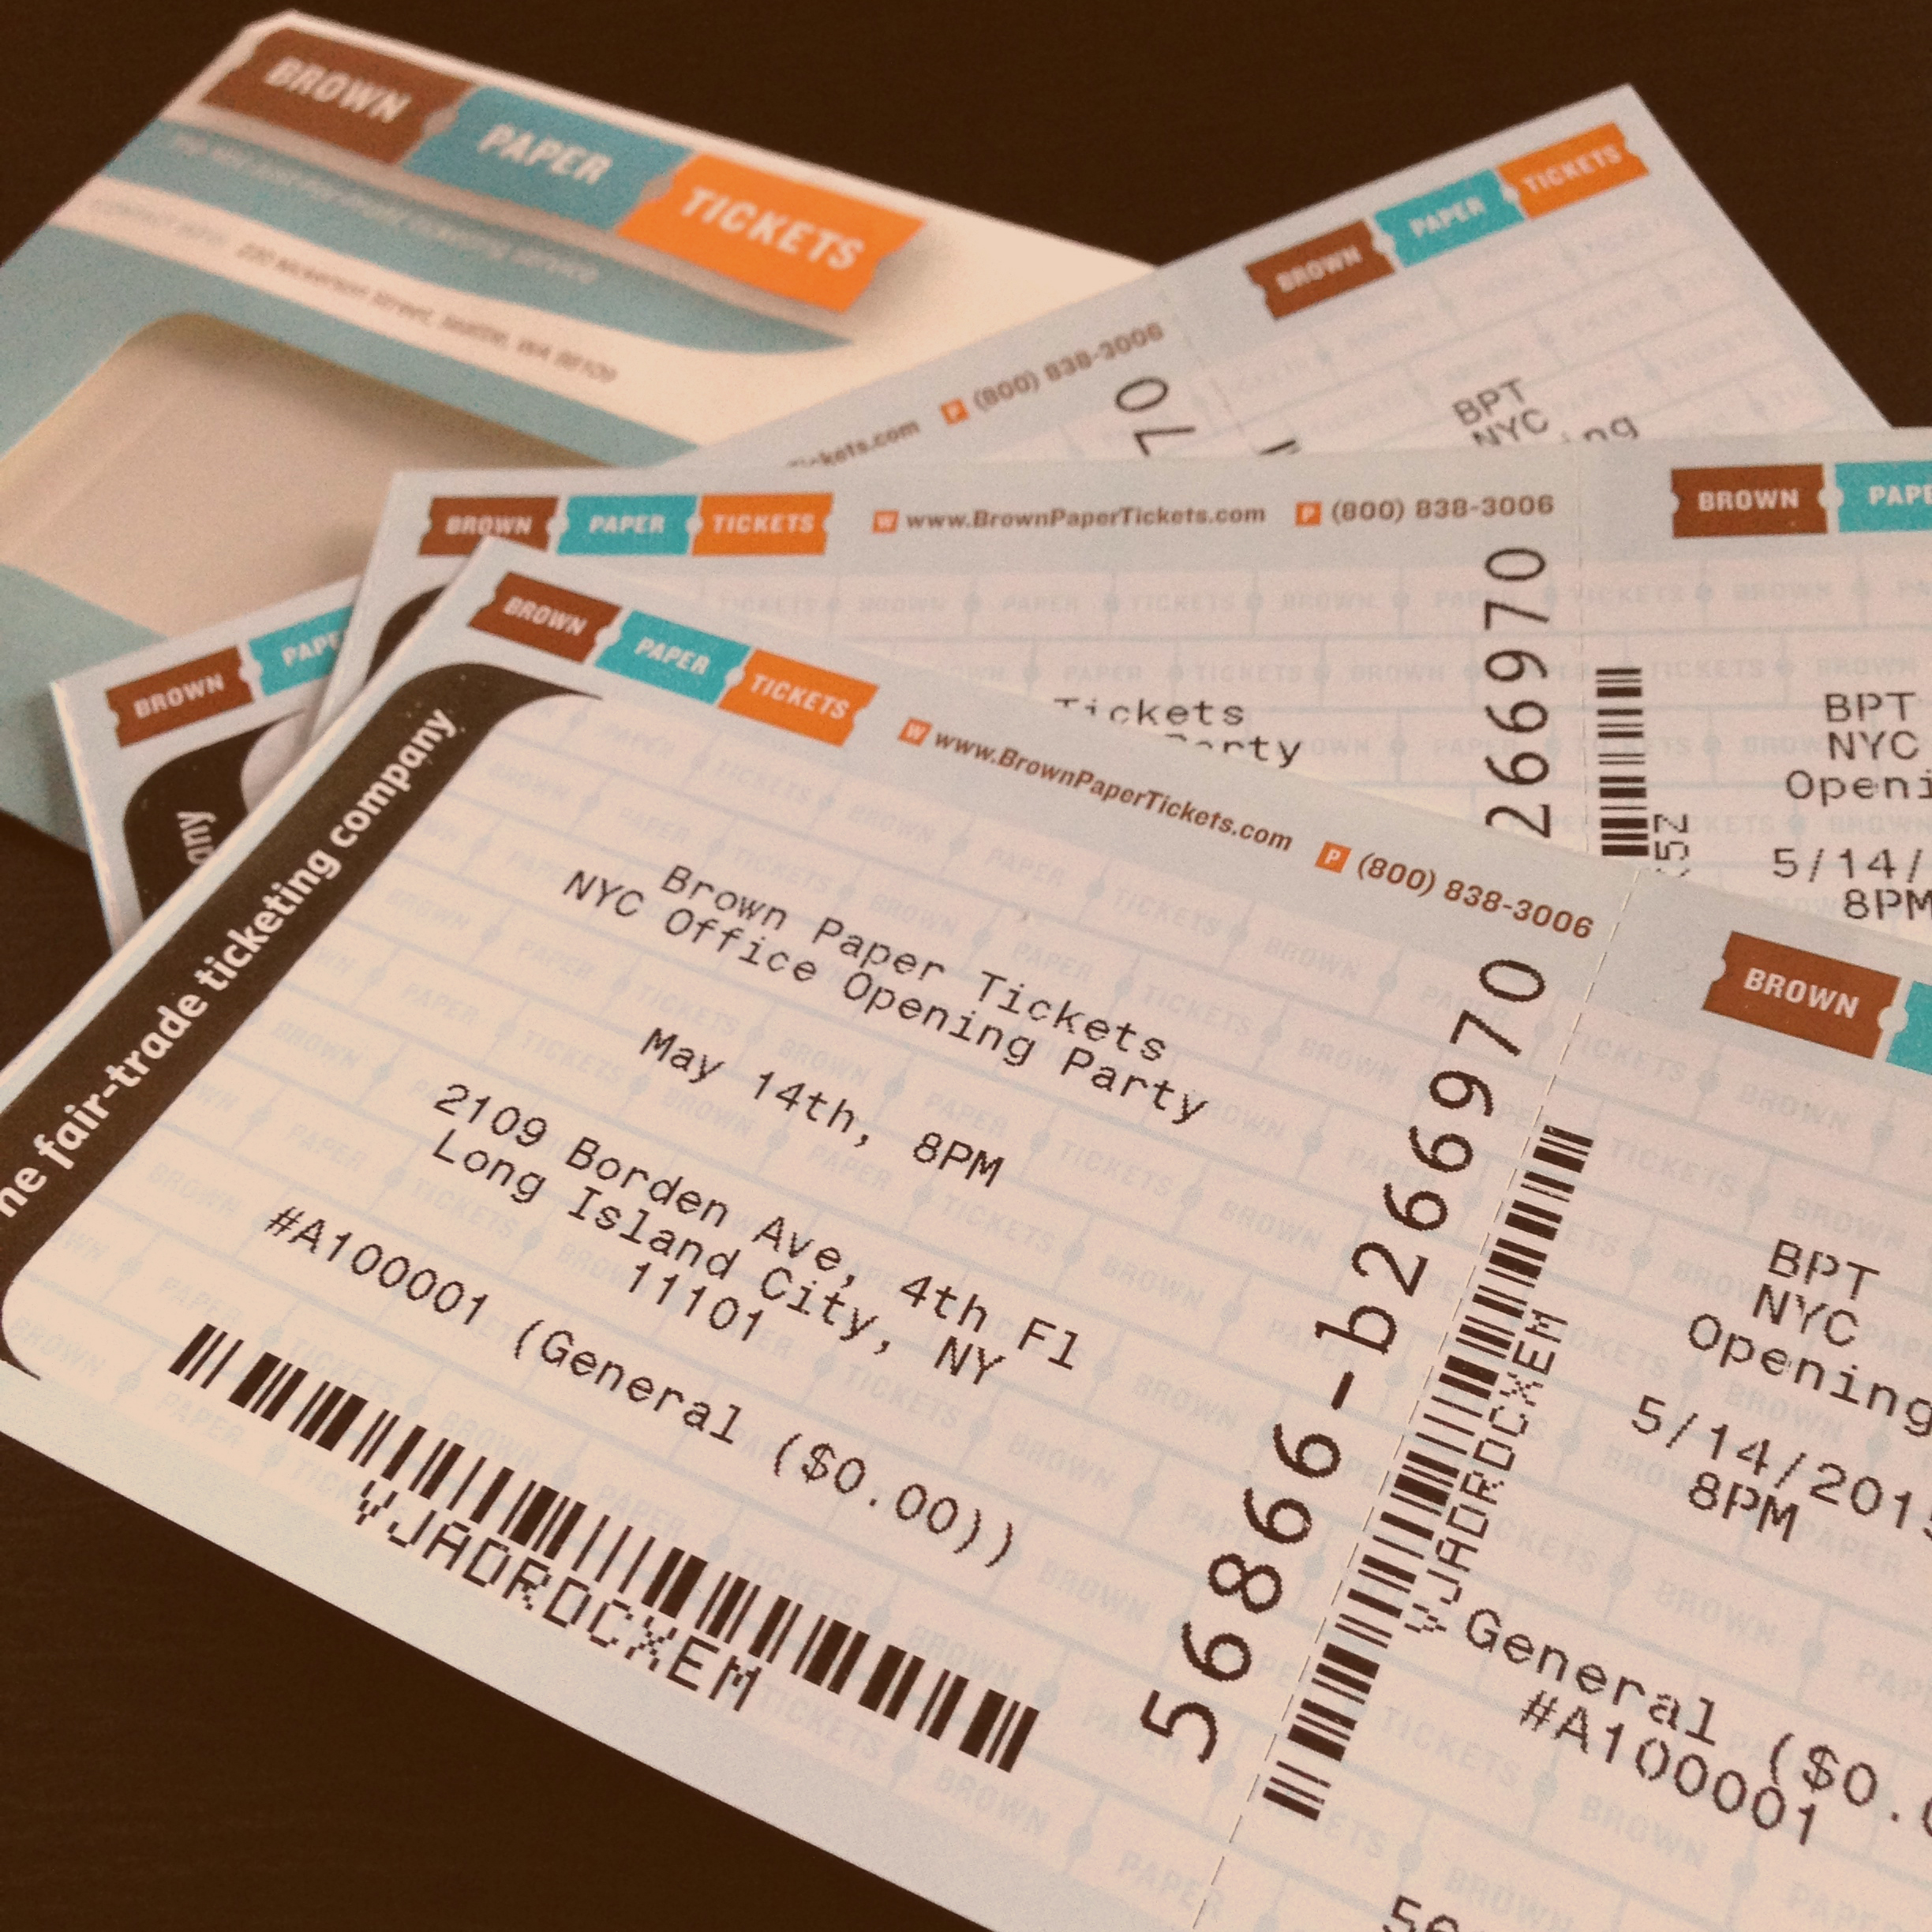 15 secrets to successful ticket giveawaysbrown paper tickets though it s tempting to hoard your brown paper tickets they re so pretty we recommend giving some away for to promote your event